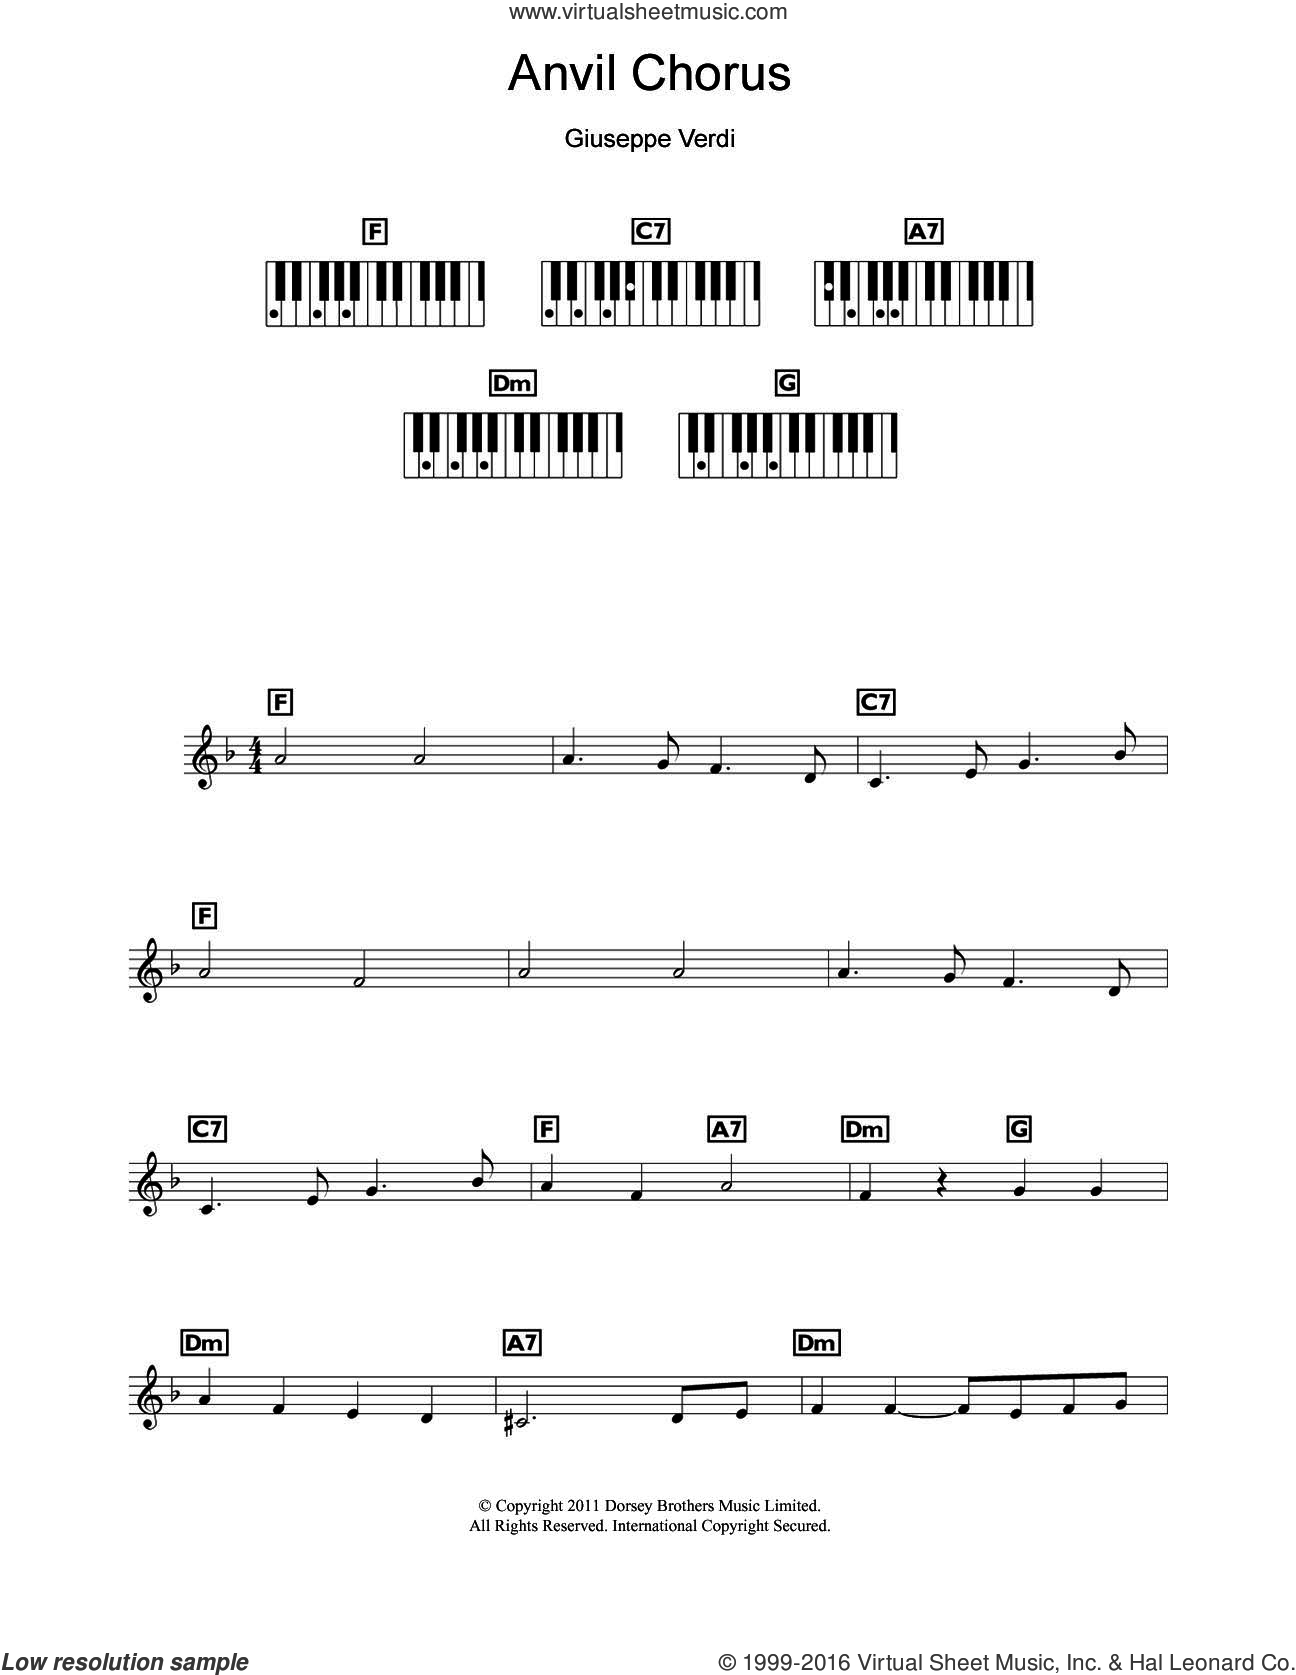 Anvil Chorus (from Il Trovatore) sheet music for piano solo (chords, lyrics, melody) by Giuseppe Verdi, classical score, intermediate piano (chords, lyrics, melody)